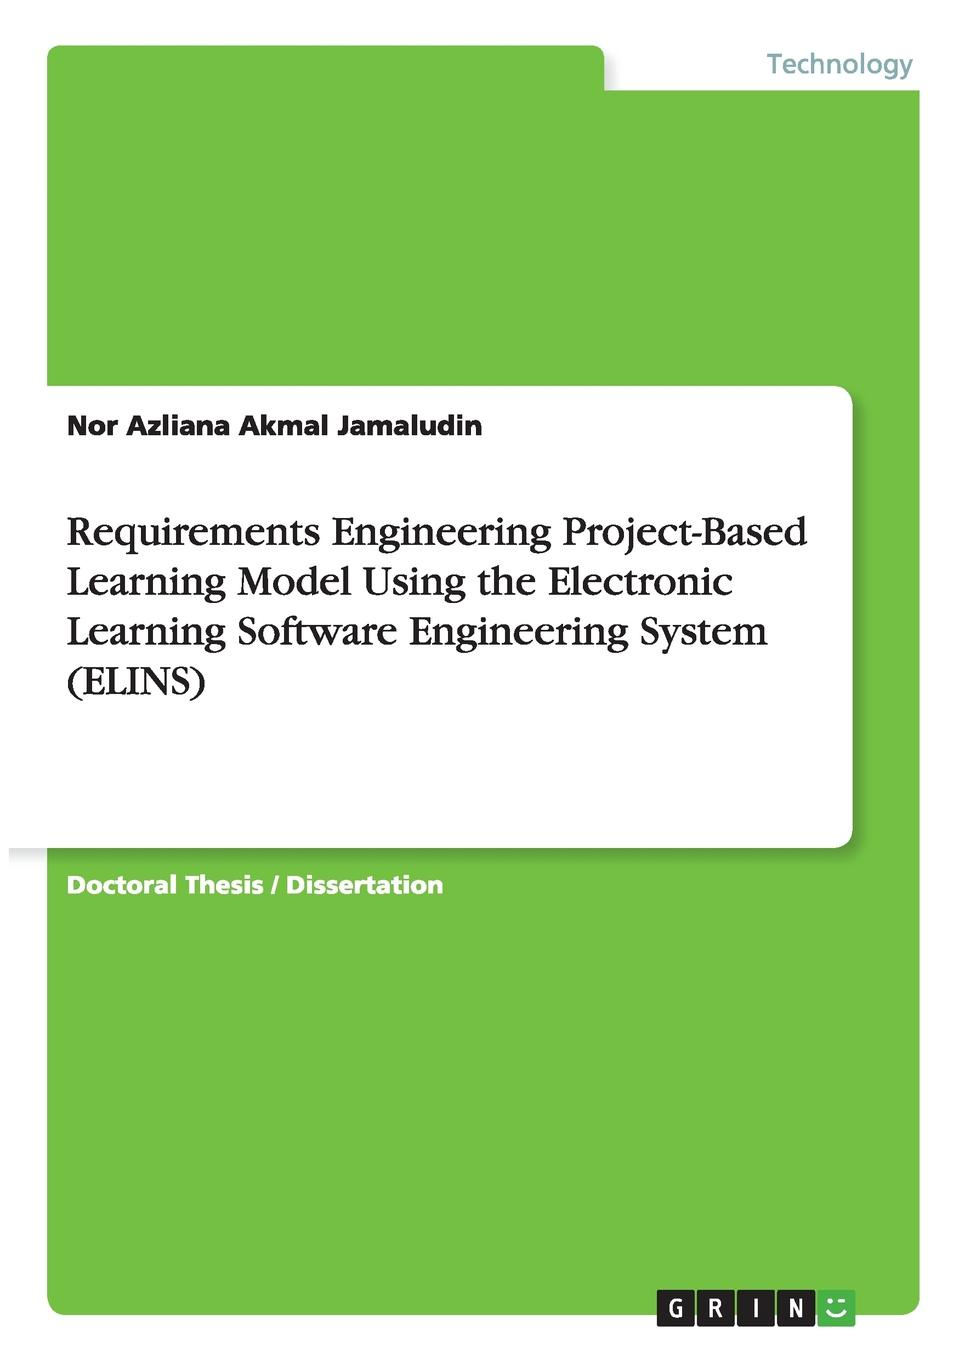 Nor Azliana Akmal Jamaludin Requirements Engineering Project-Based Learning Model Using the Electronic Learning Software Engineering System (ELINS)